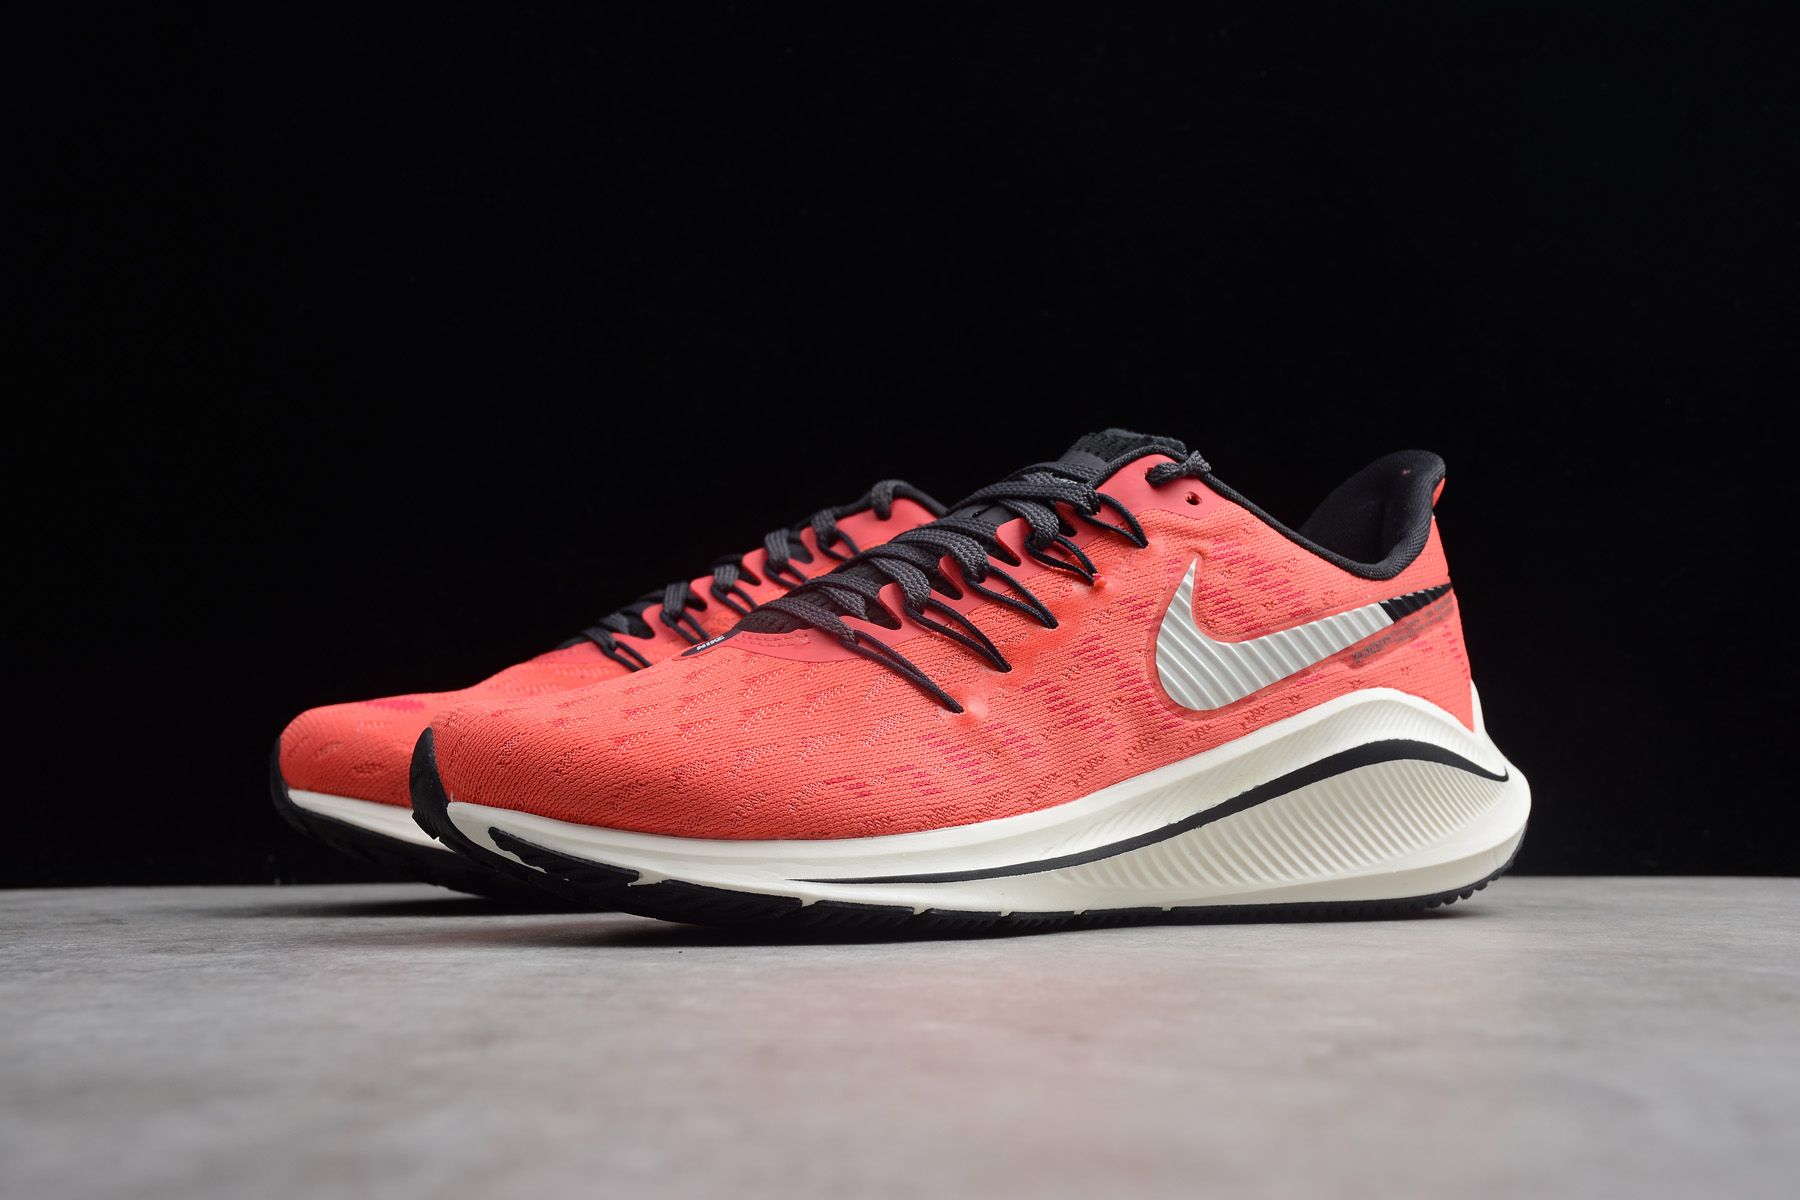 Womens Nike Air Zoom Vomero 14 Red Black-Sail AH7858-800  b6efef33d5